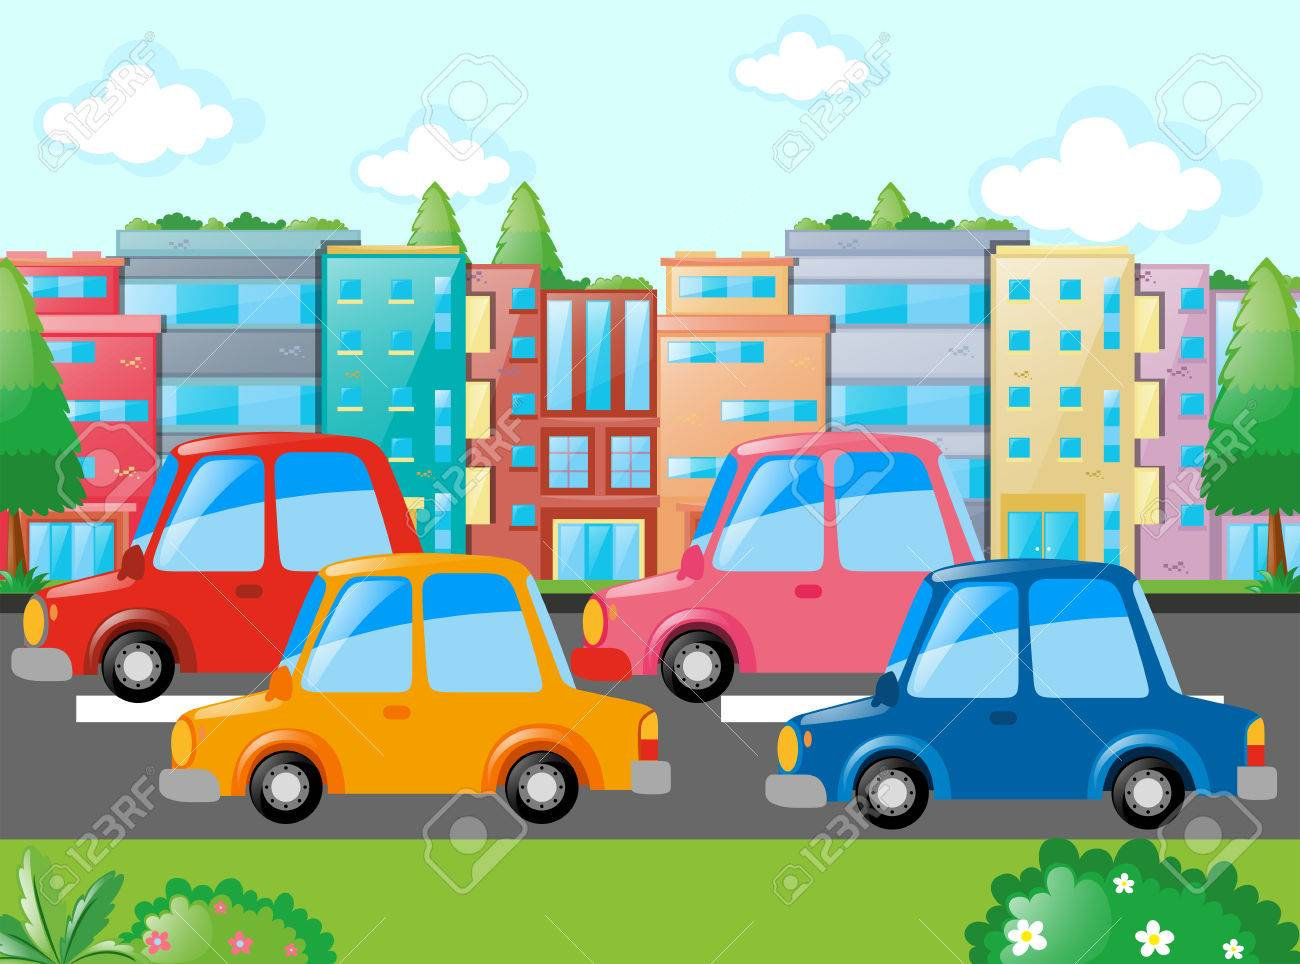 Scene with many cars on road illustration.